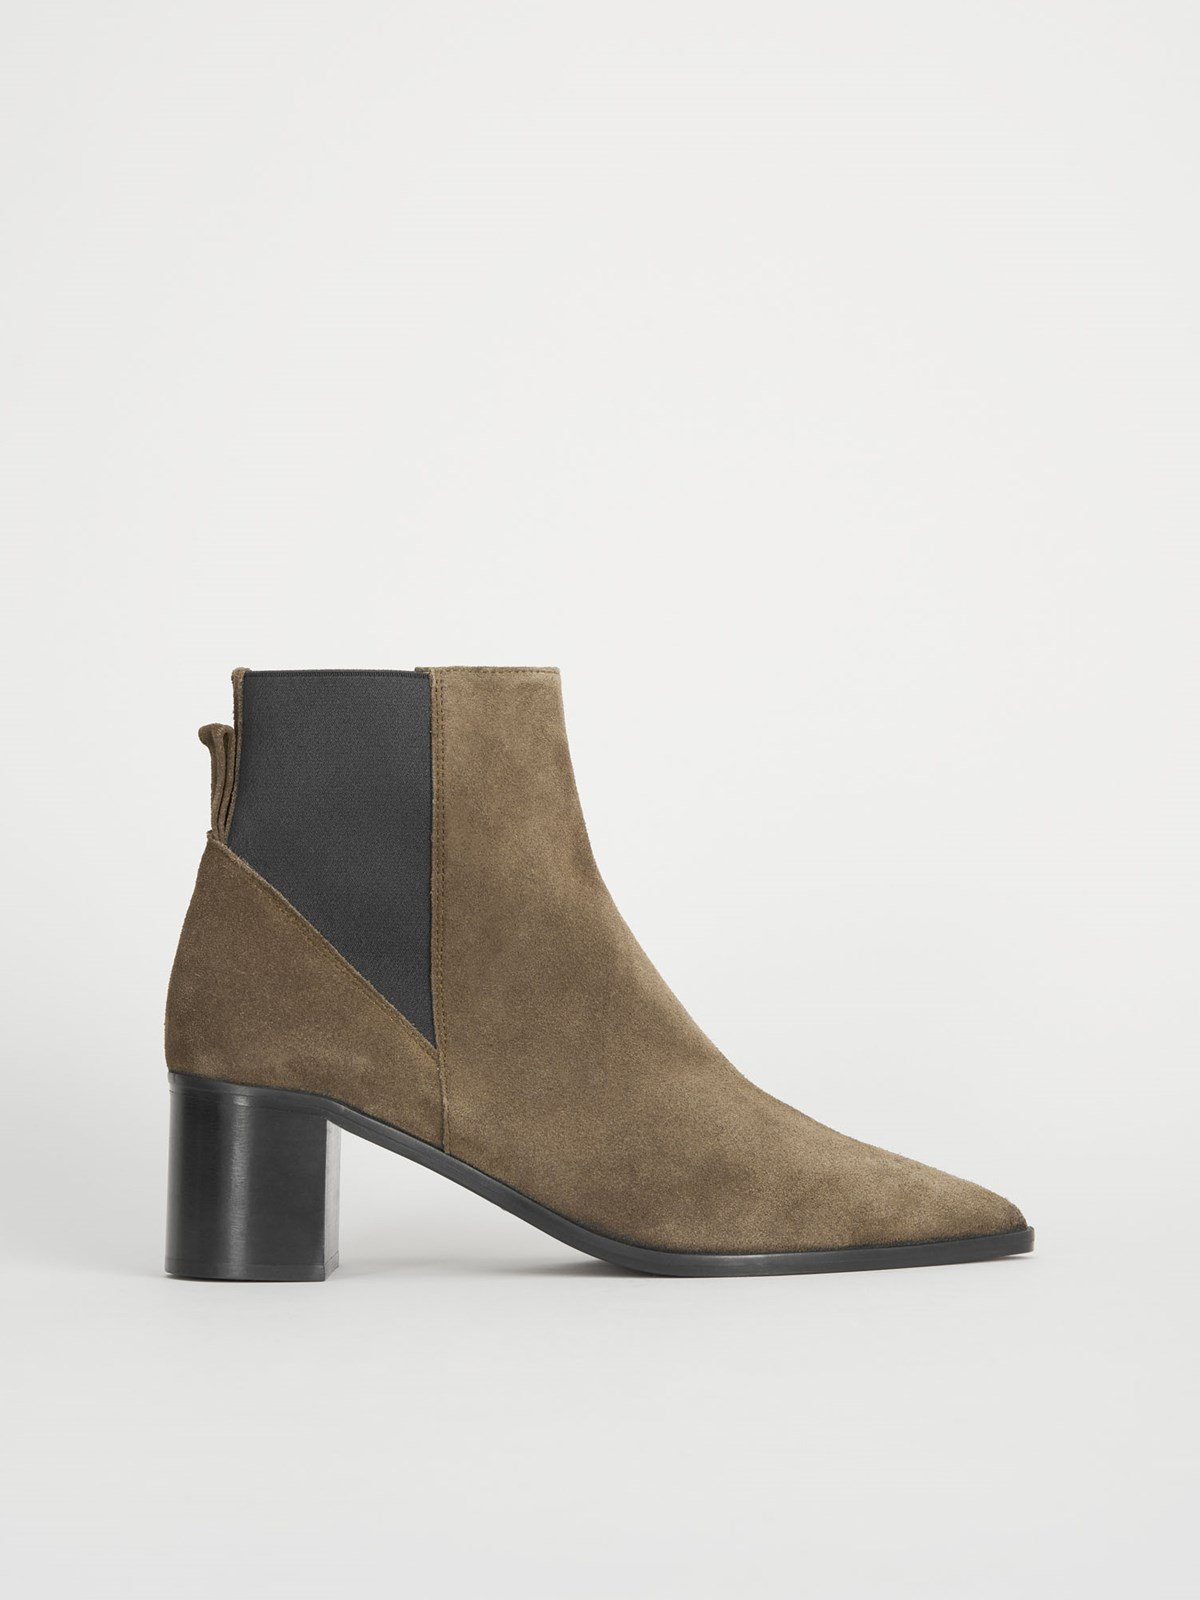 Donaci Khaki Brown Ankle Boots